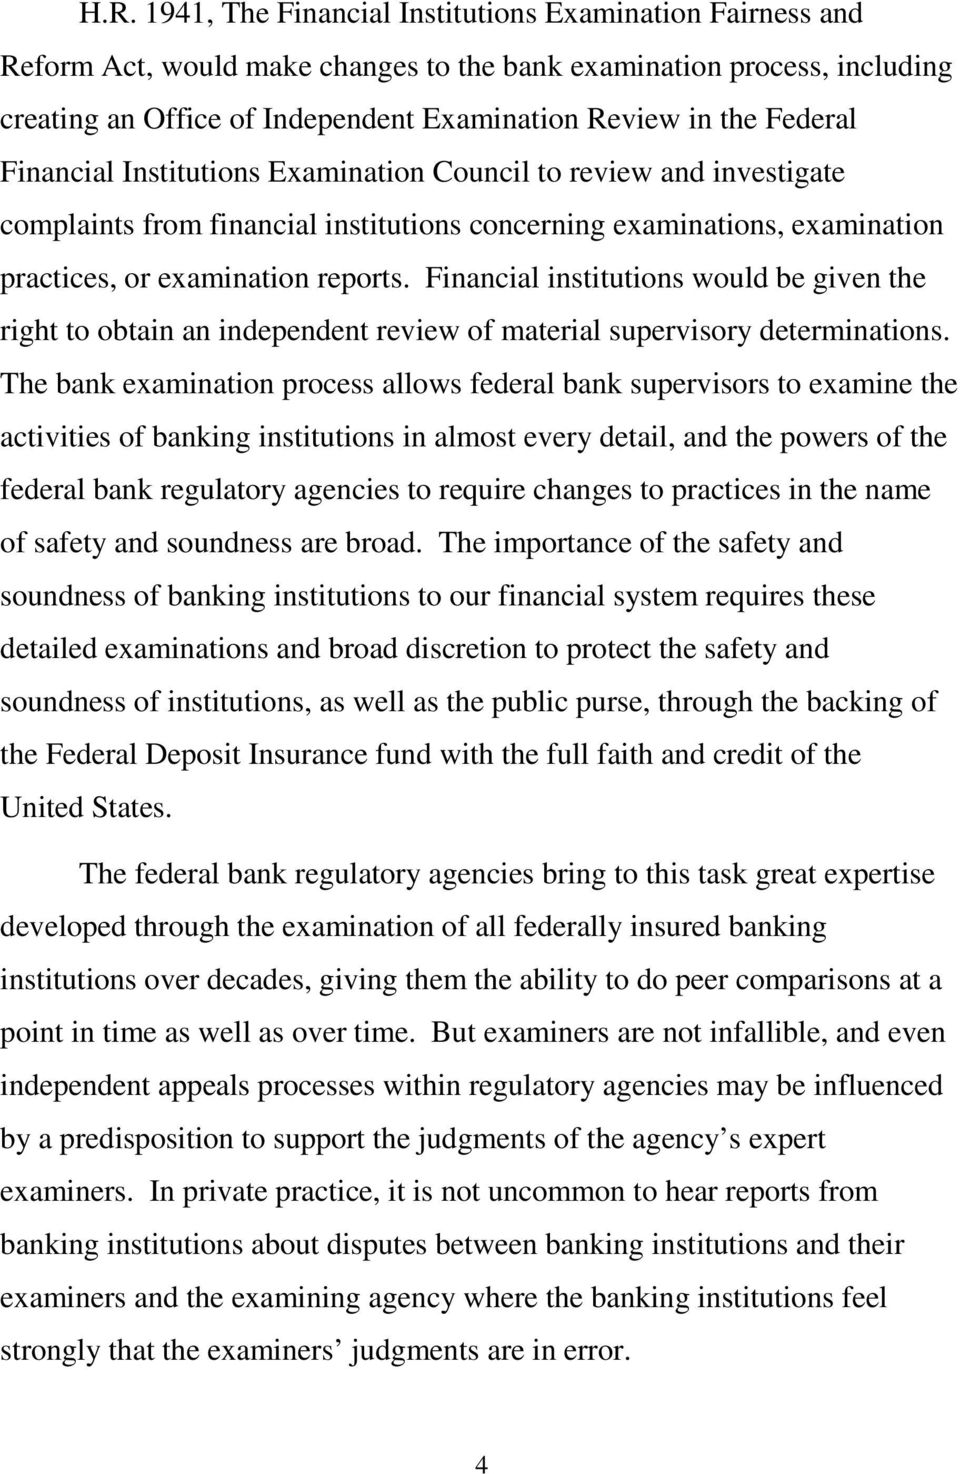 Financial institutions would be given the right to obtain an independent review of material supervisory determinations.